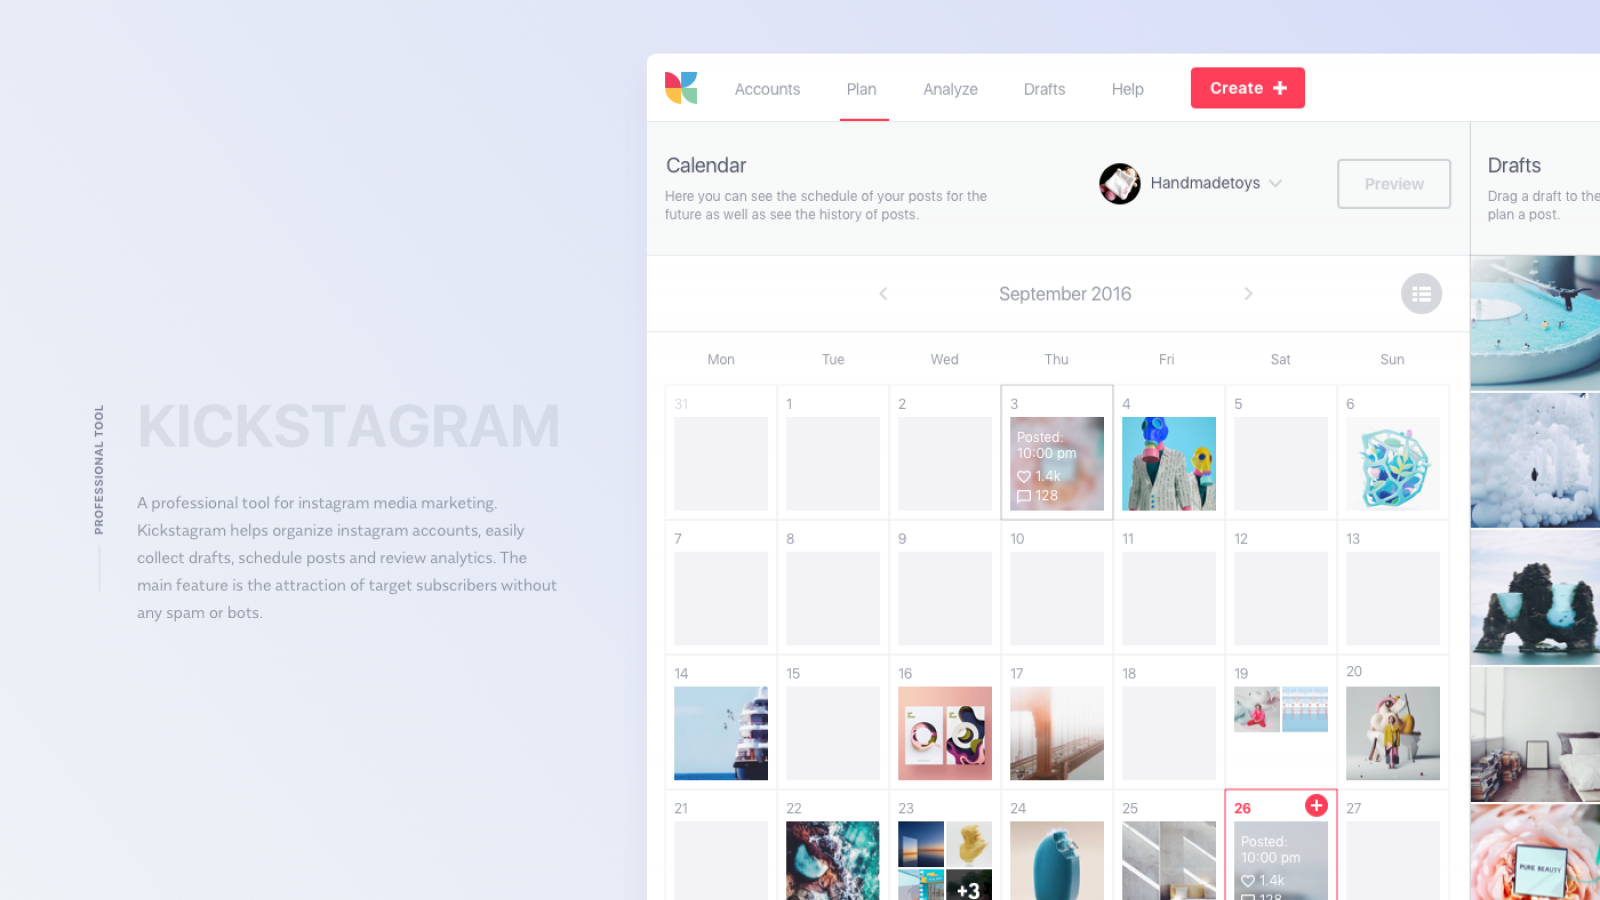 Interaction Design & UI/UX: Kickstagram, an Instagram Marketing Tool